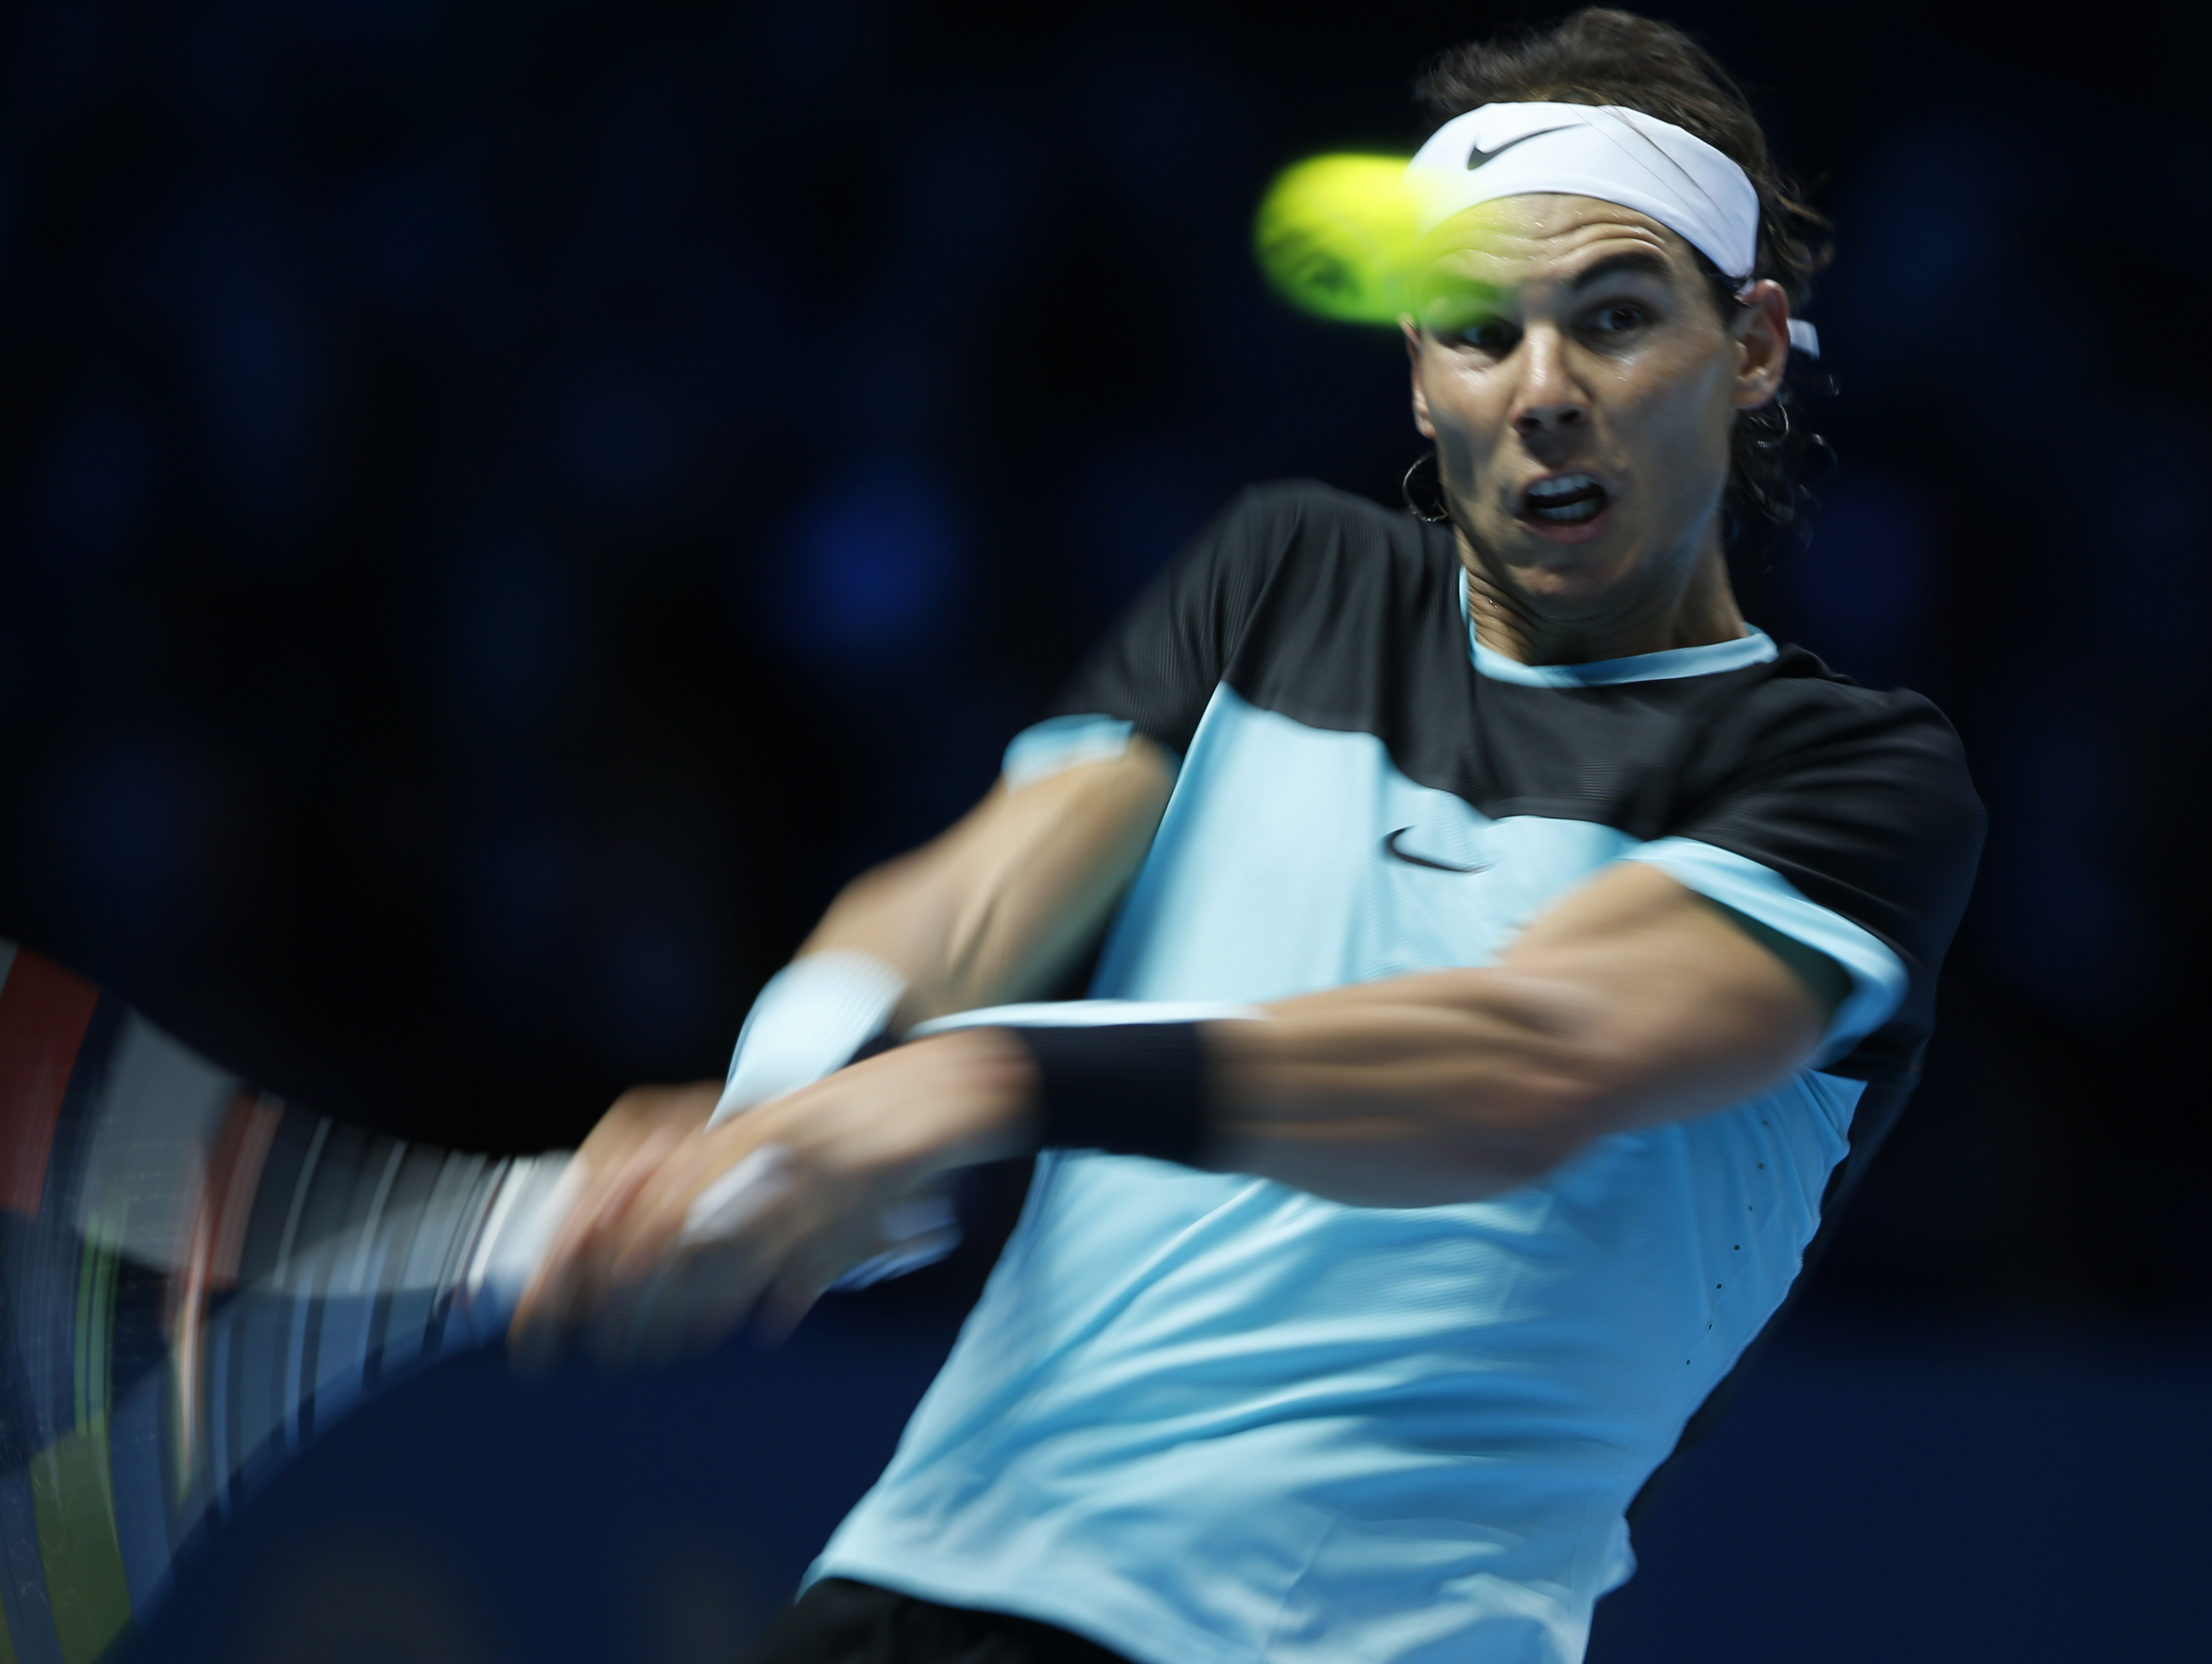 Rafael Nadal of Spain hits a return to David Ferrer of Spain during their singles tennis match at the ATP World Tour Finals at the O2 Arena in London, Friday, Nov. 20, 2015. (AP Photo/Alastair Grant)